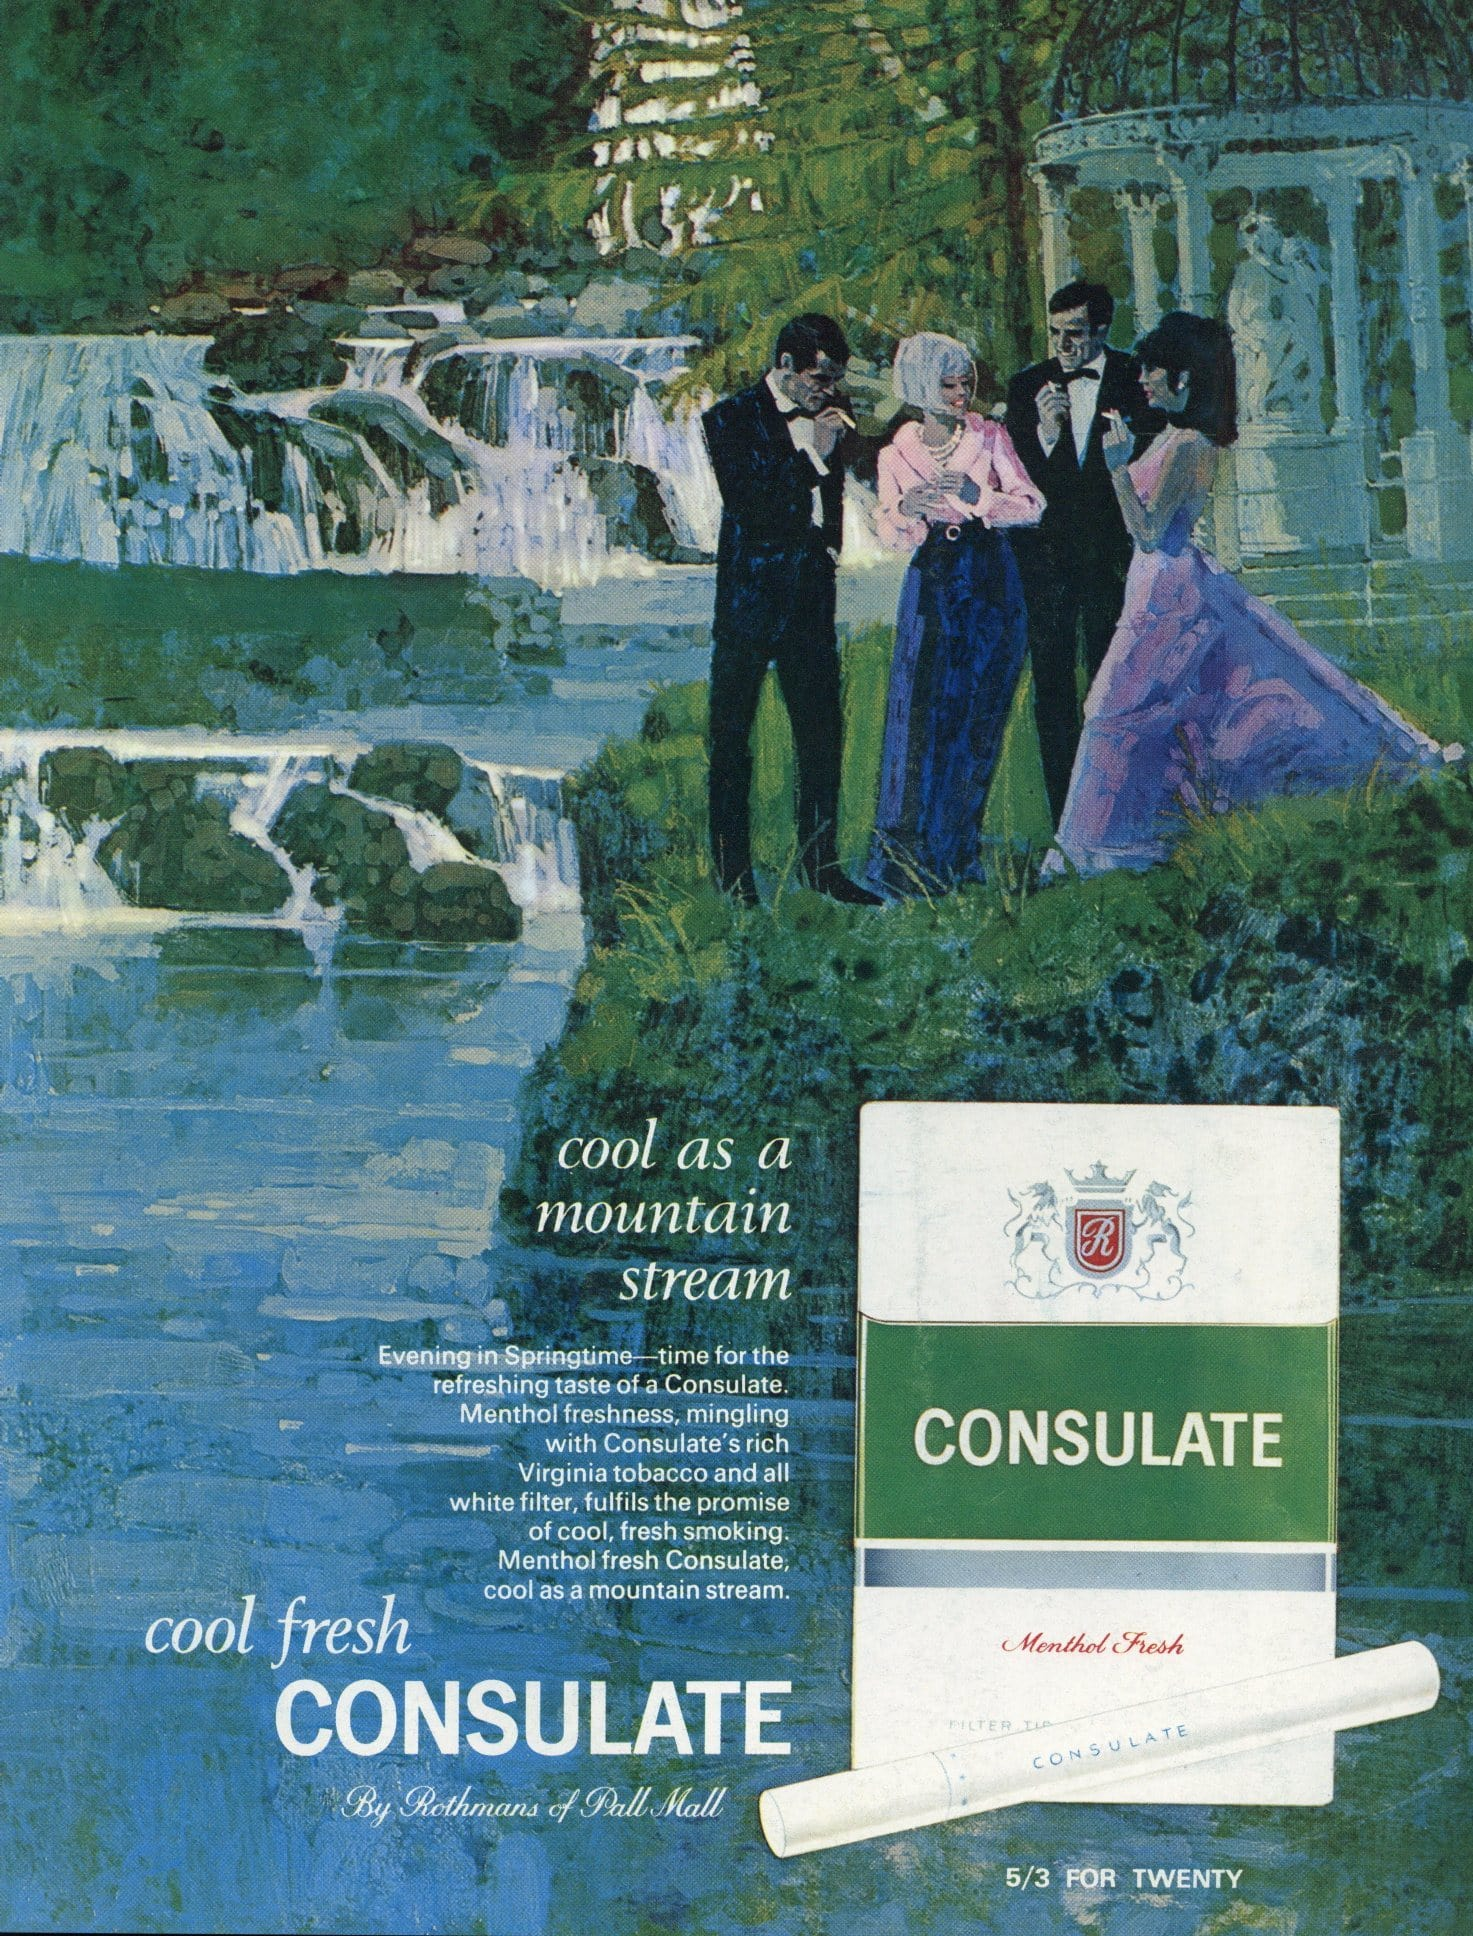 Consulate Cigarettes Advertisement - 1960's Print Ad - Mid Century Print Ad